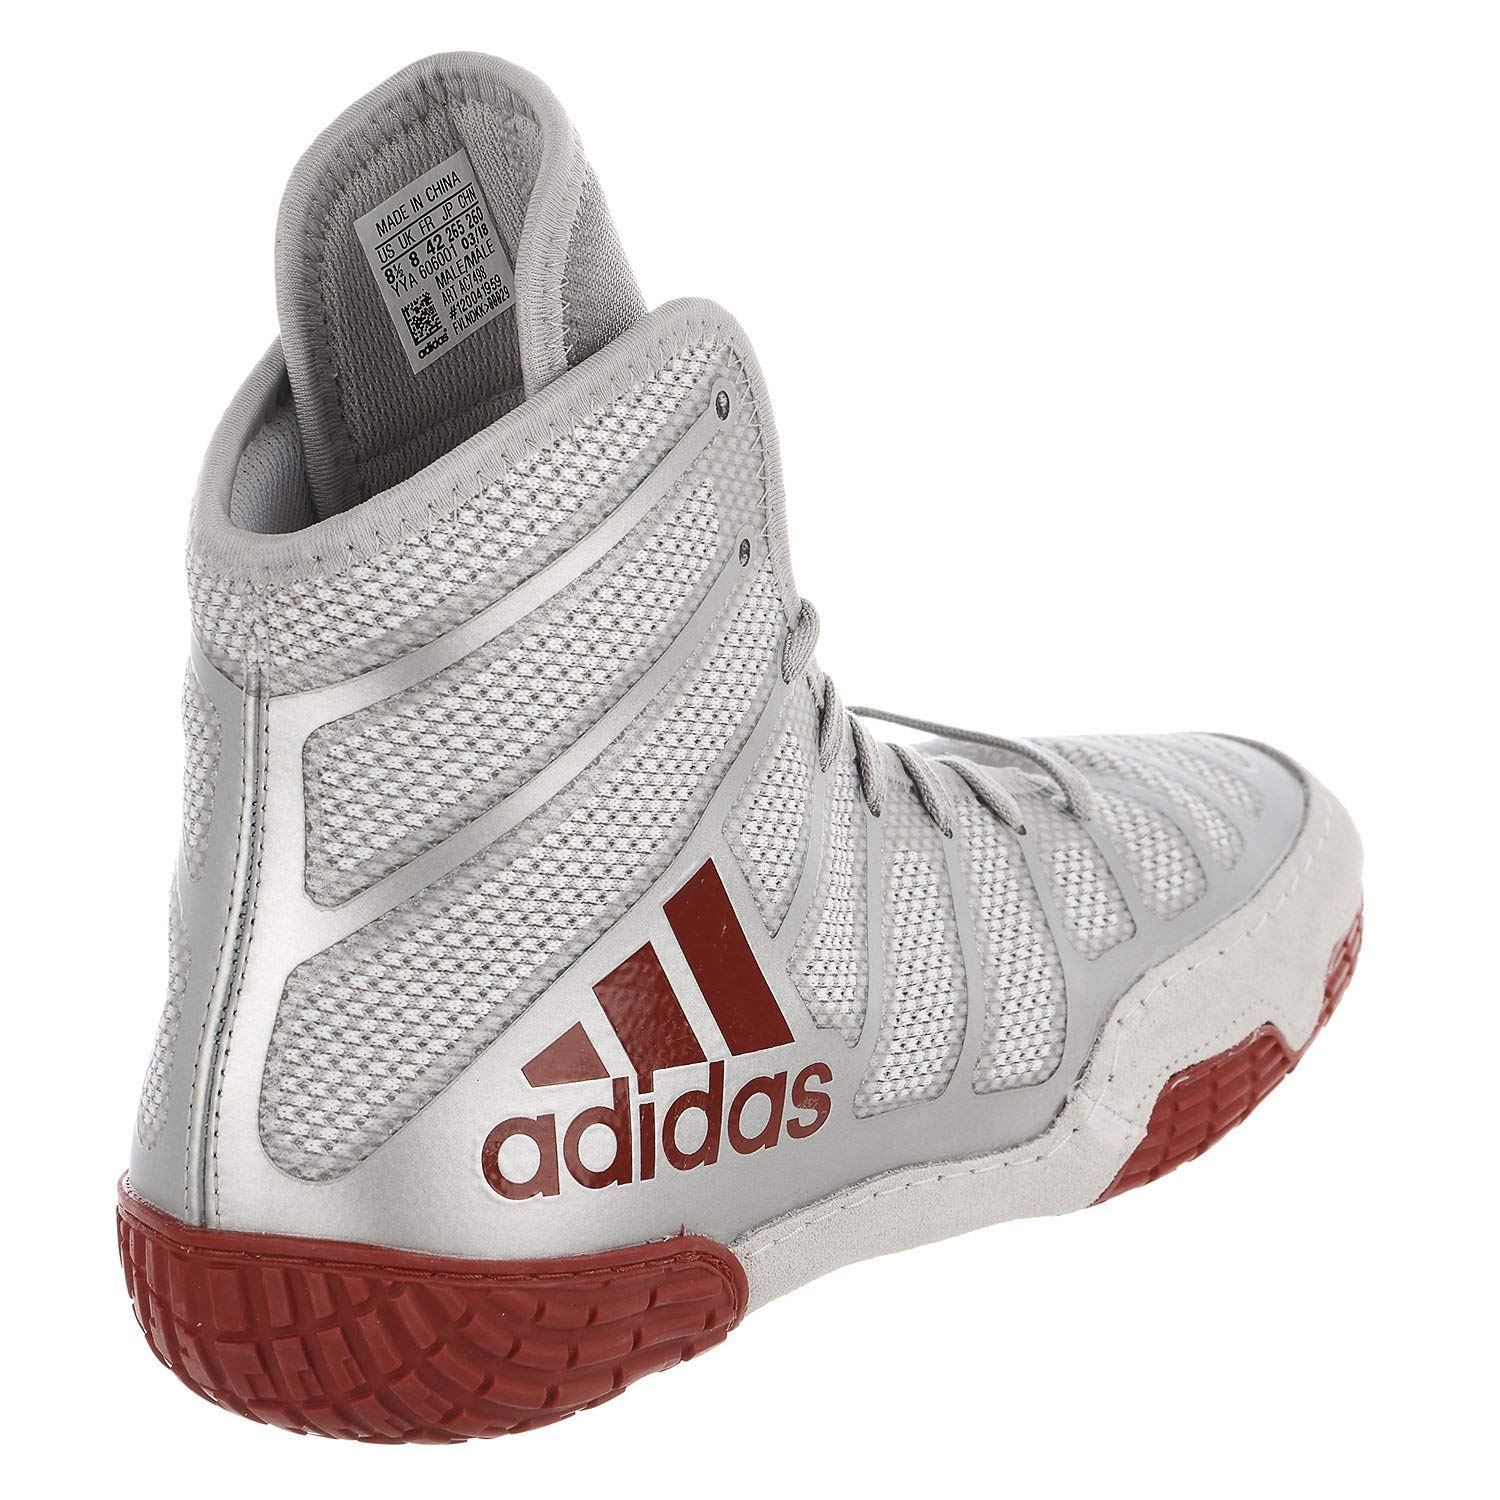 finest selection 4d7d0 e9792 Amazon.com  adidas Mens Adizero Varner Wrestling Shoes, RedSilverRed,  Size 15  Wrestling